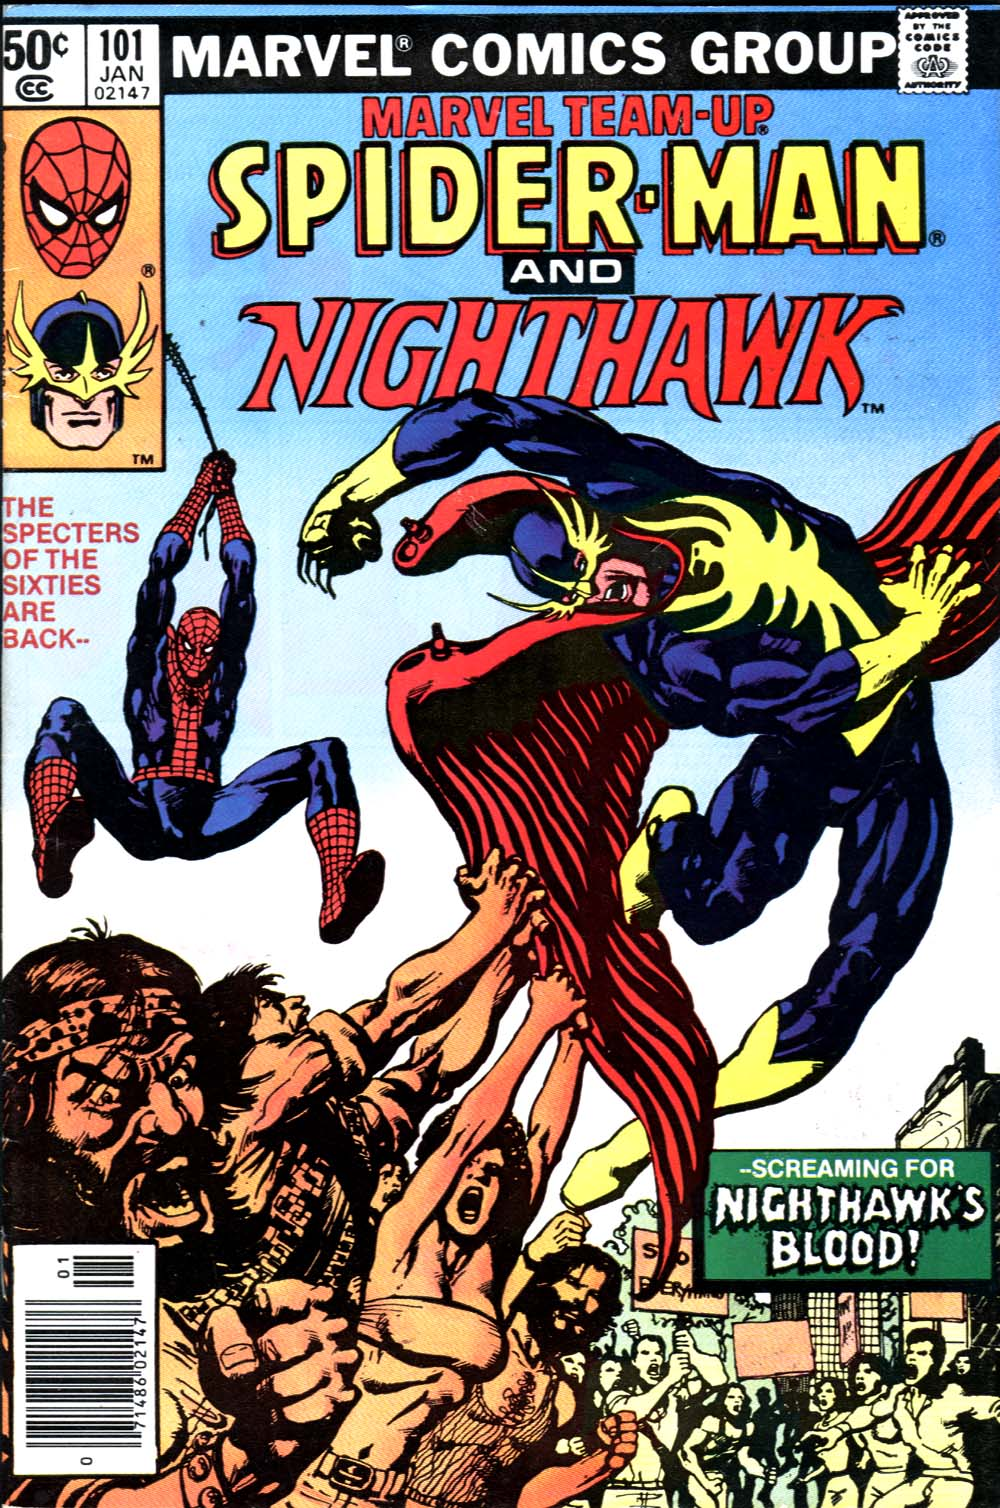 Marvel Team-Up (1972) #101, cover by Mike Nasser.